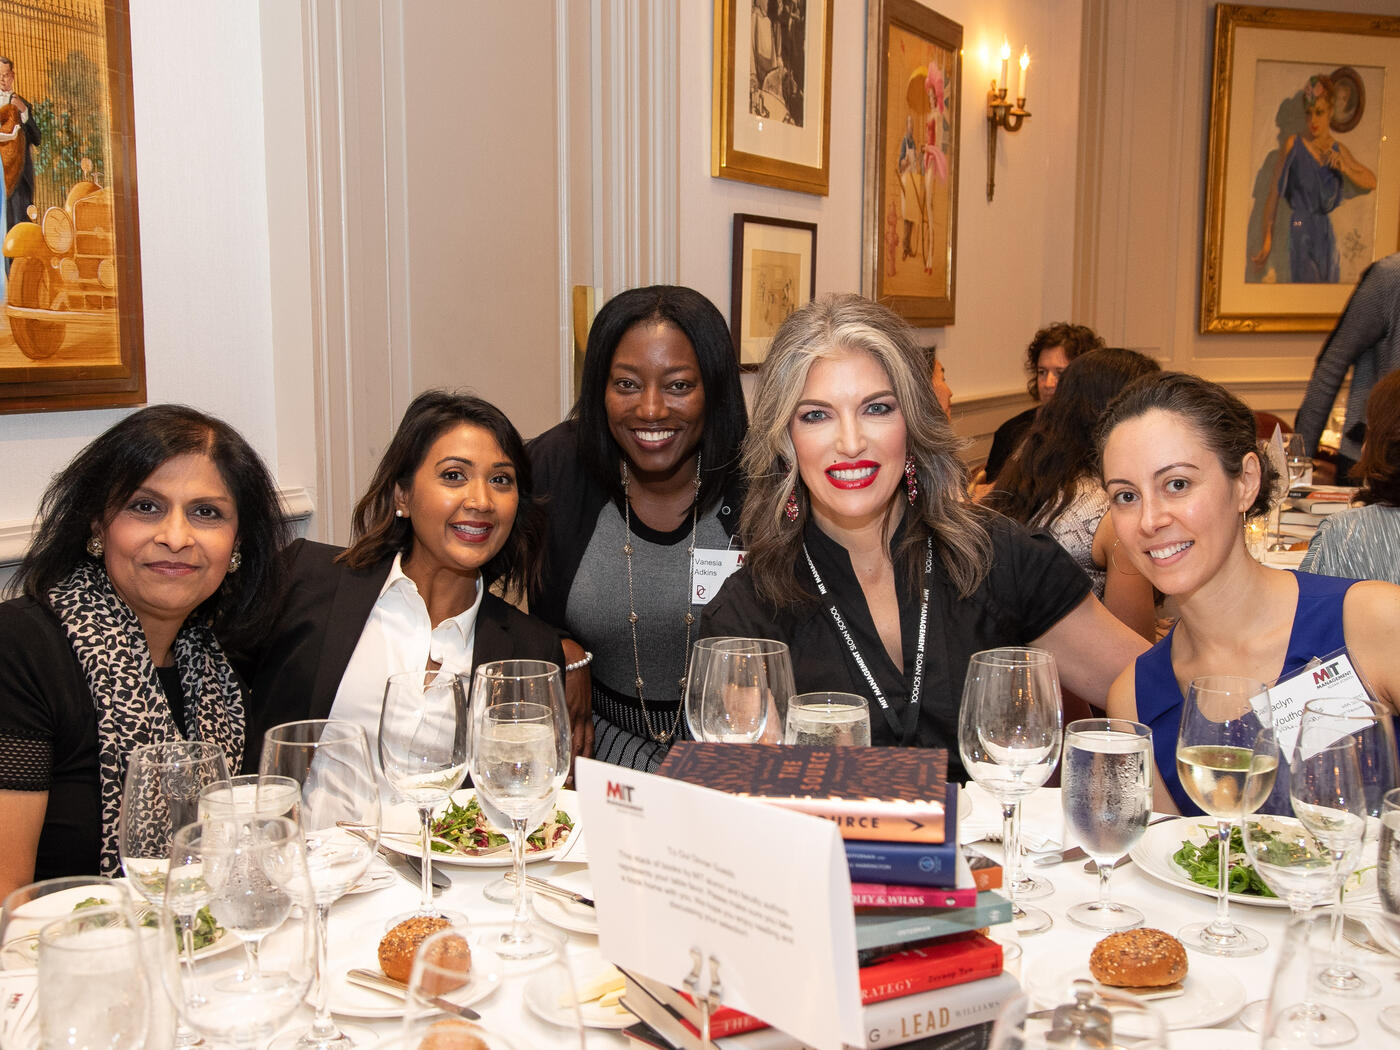 MIT Sloan Global Women's Pre-Conference Dinner Photos 2019